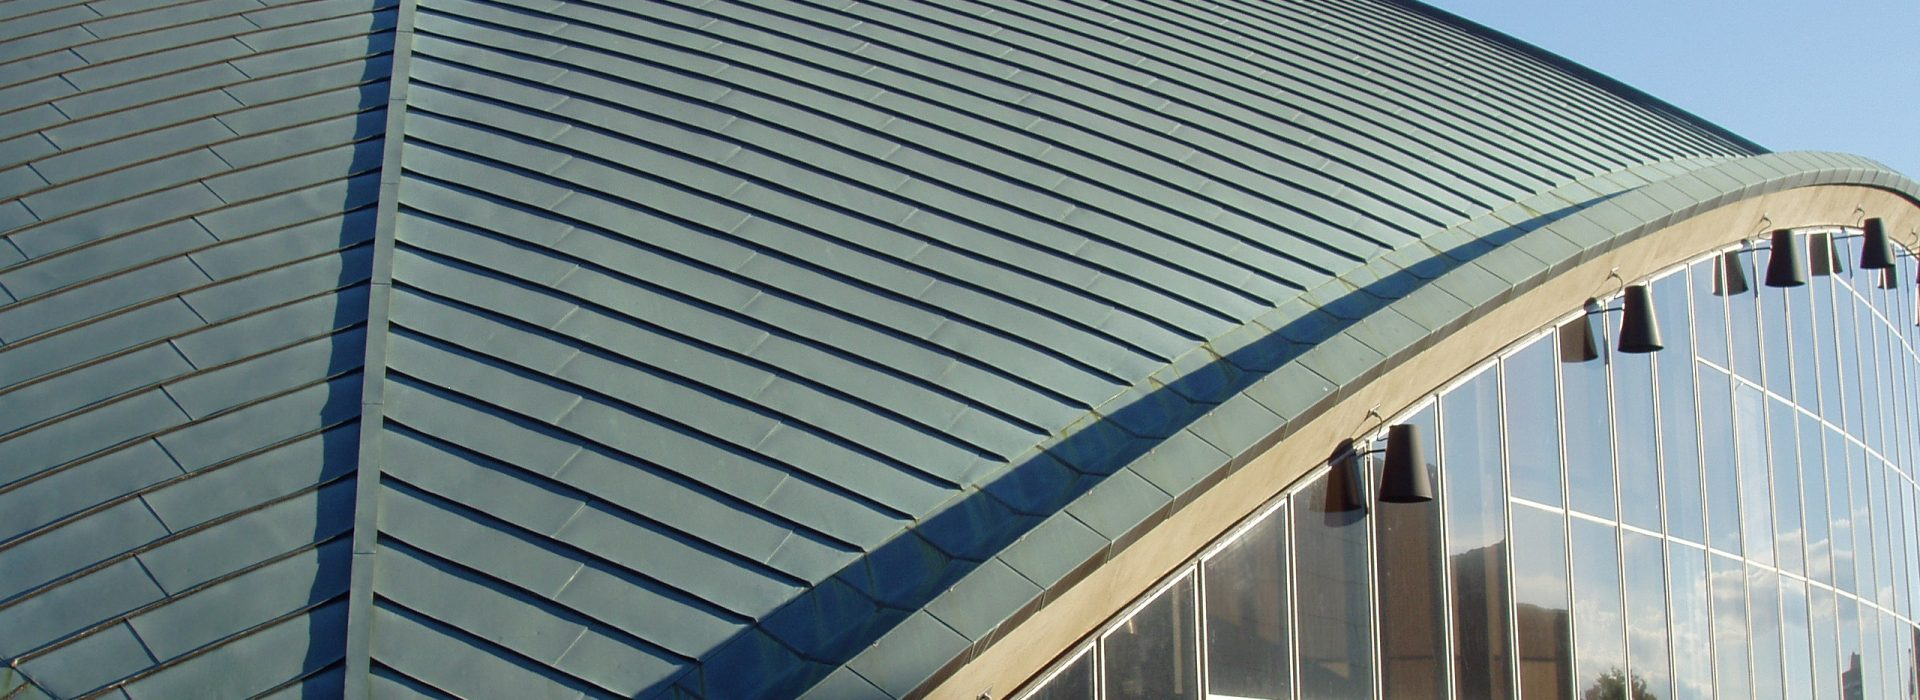 What Are the Materials Used in Roofing